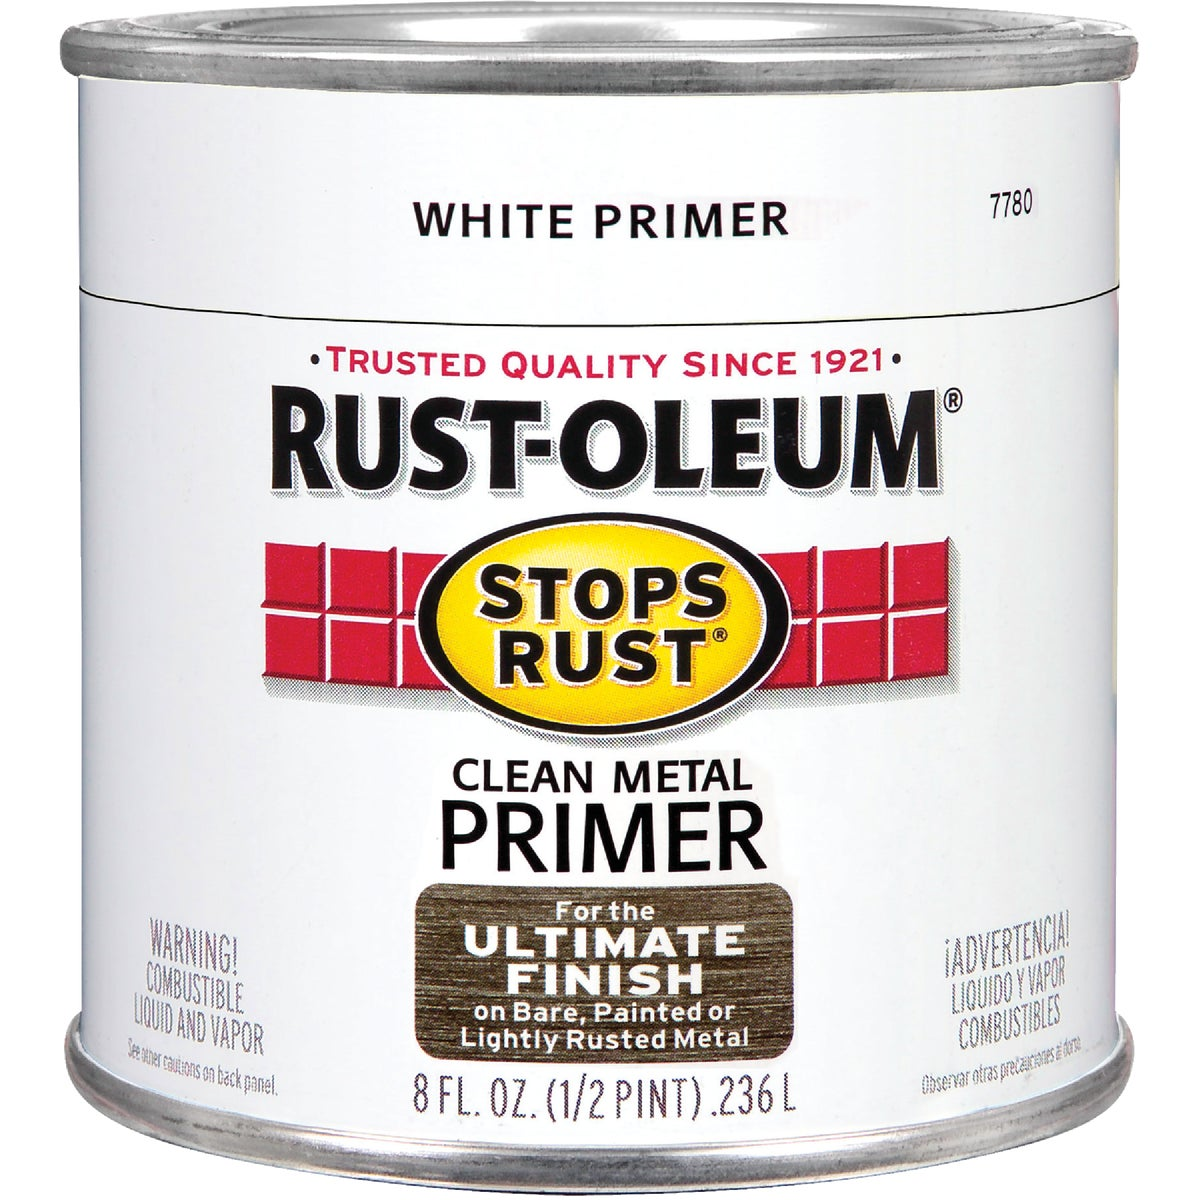 WHITE CLEAN METAL PRIMER - 7780-730 by Rustoleum